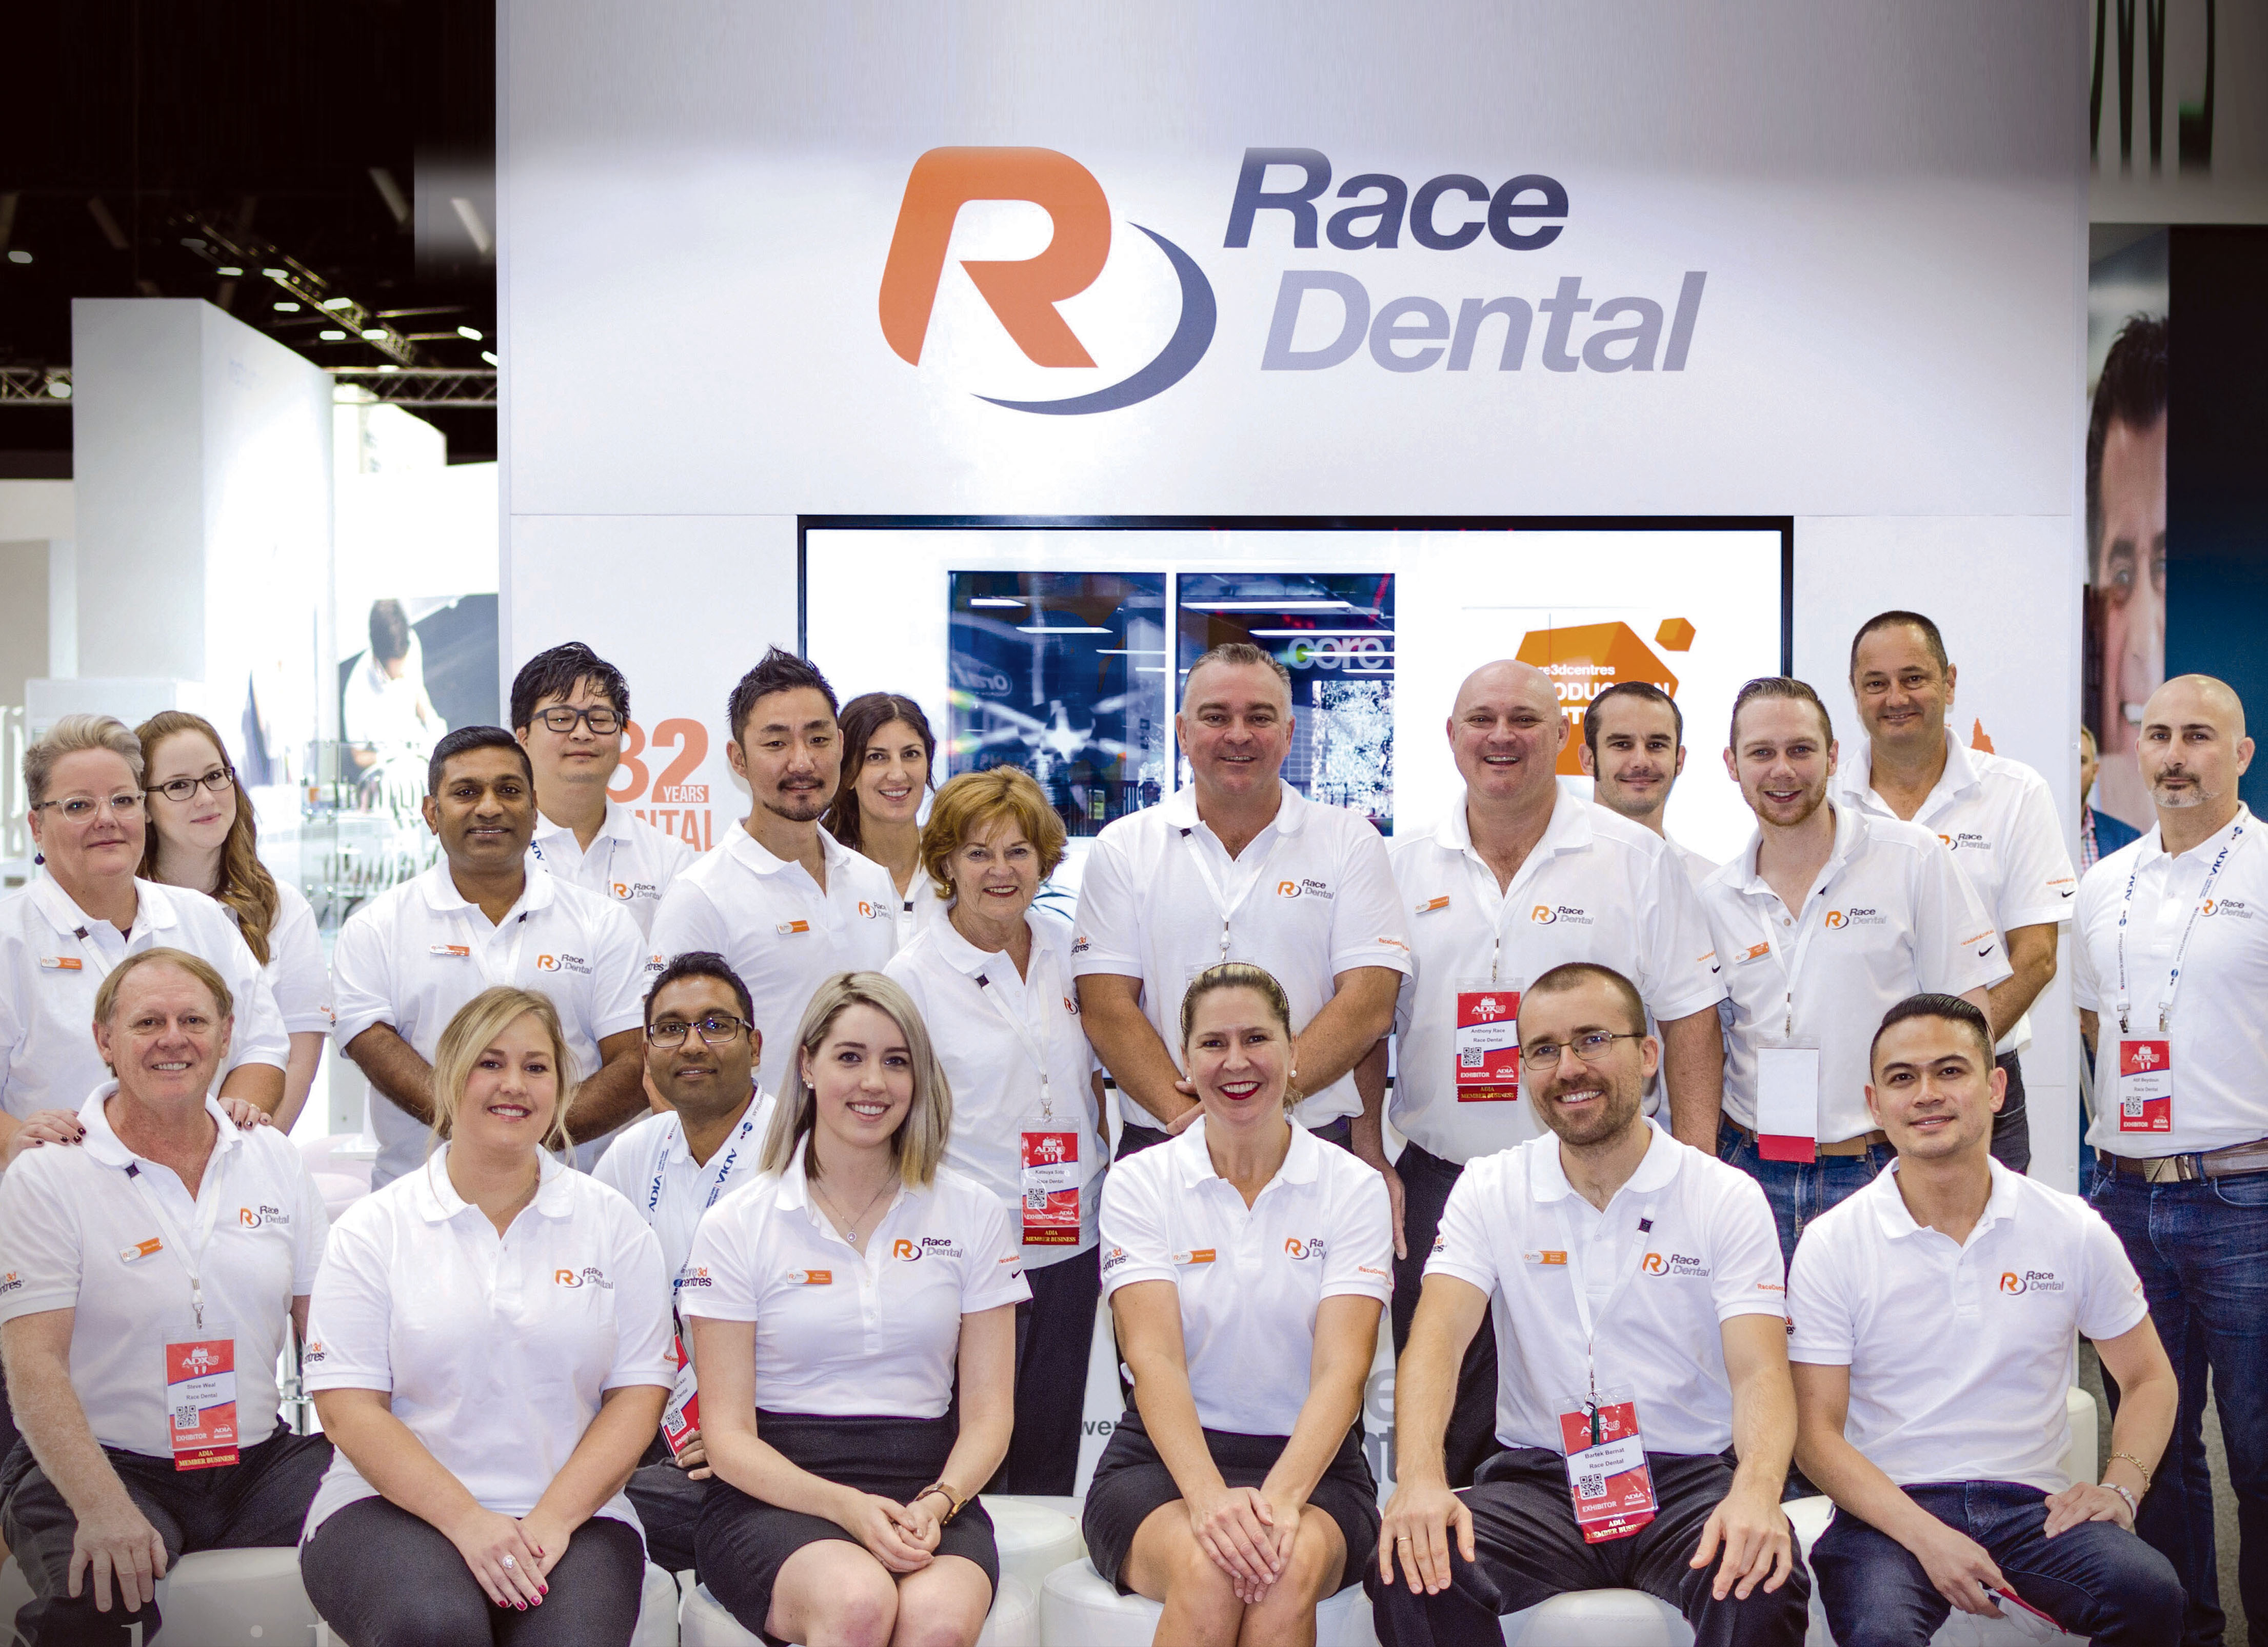 Race Dental at the ADX18